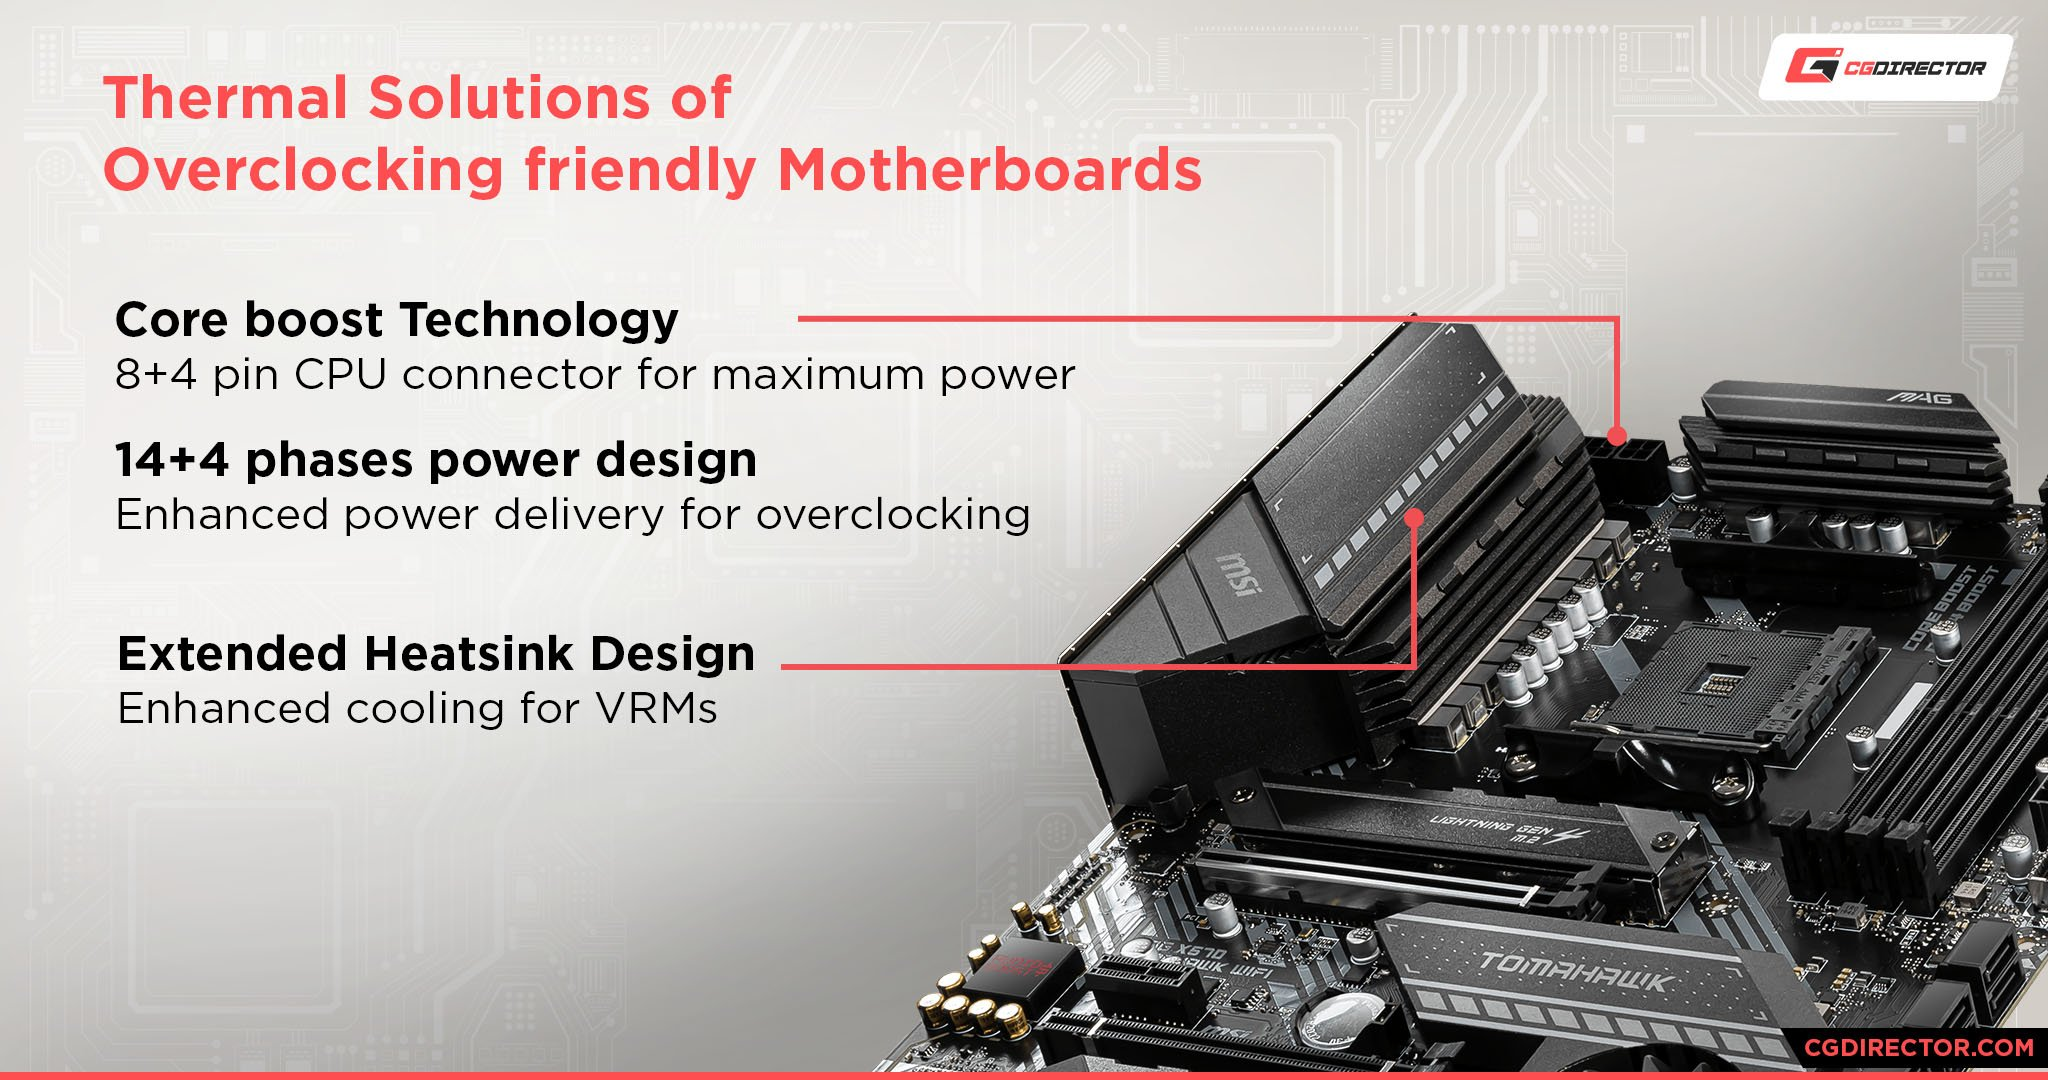 Thermal Solutions of overclocking friendly motherboards